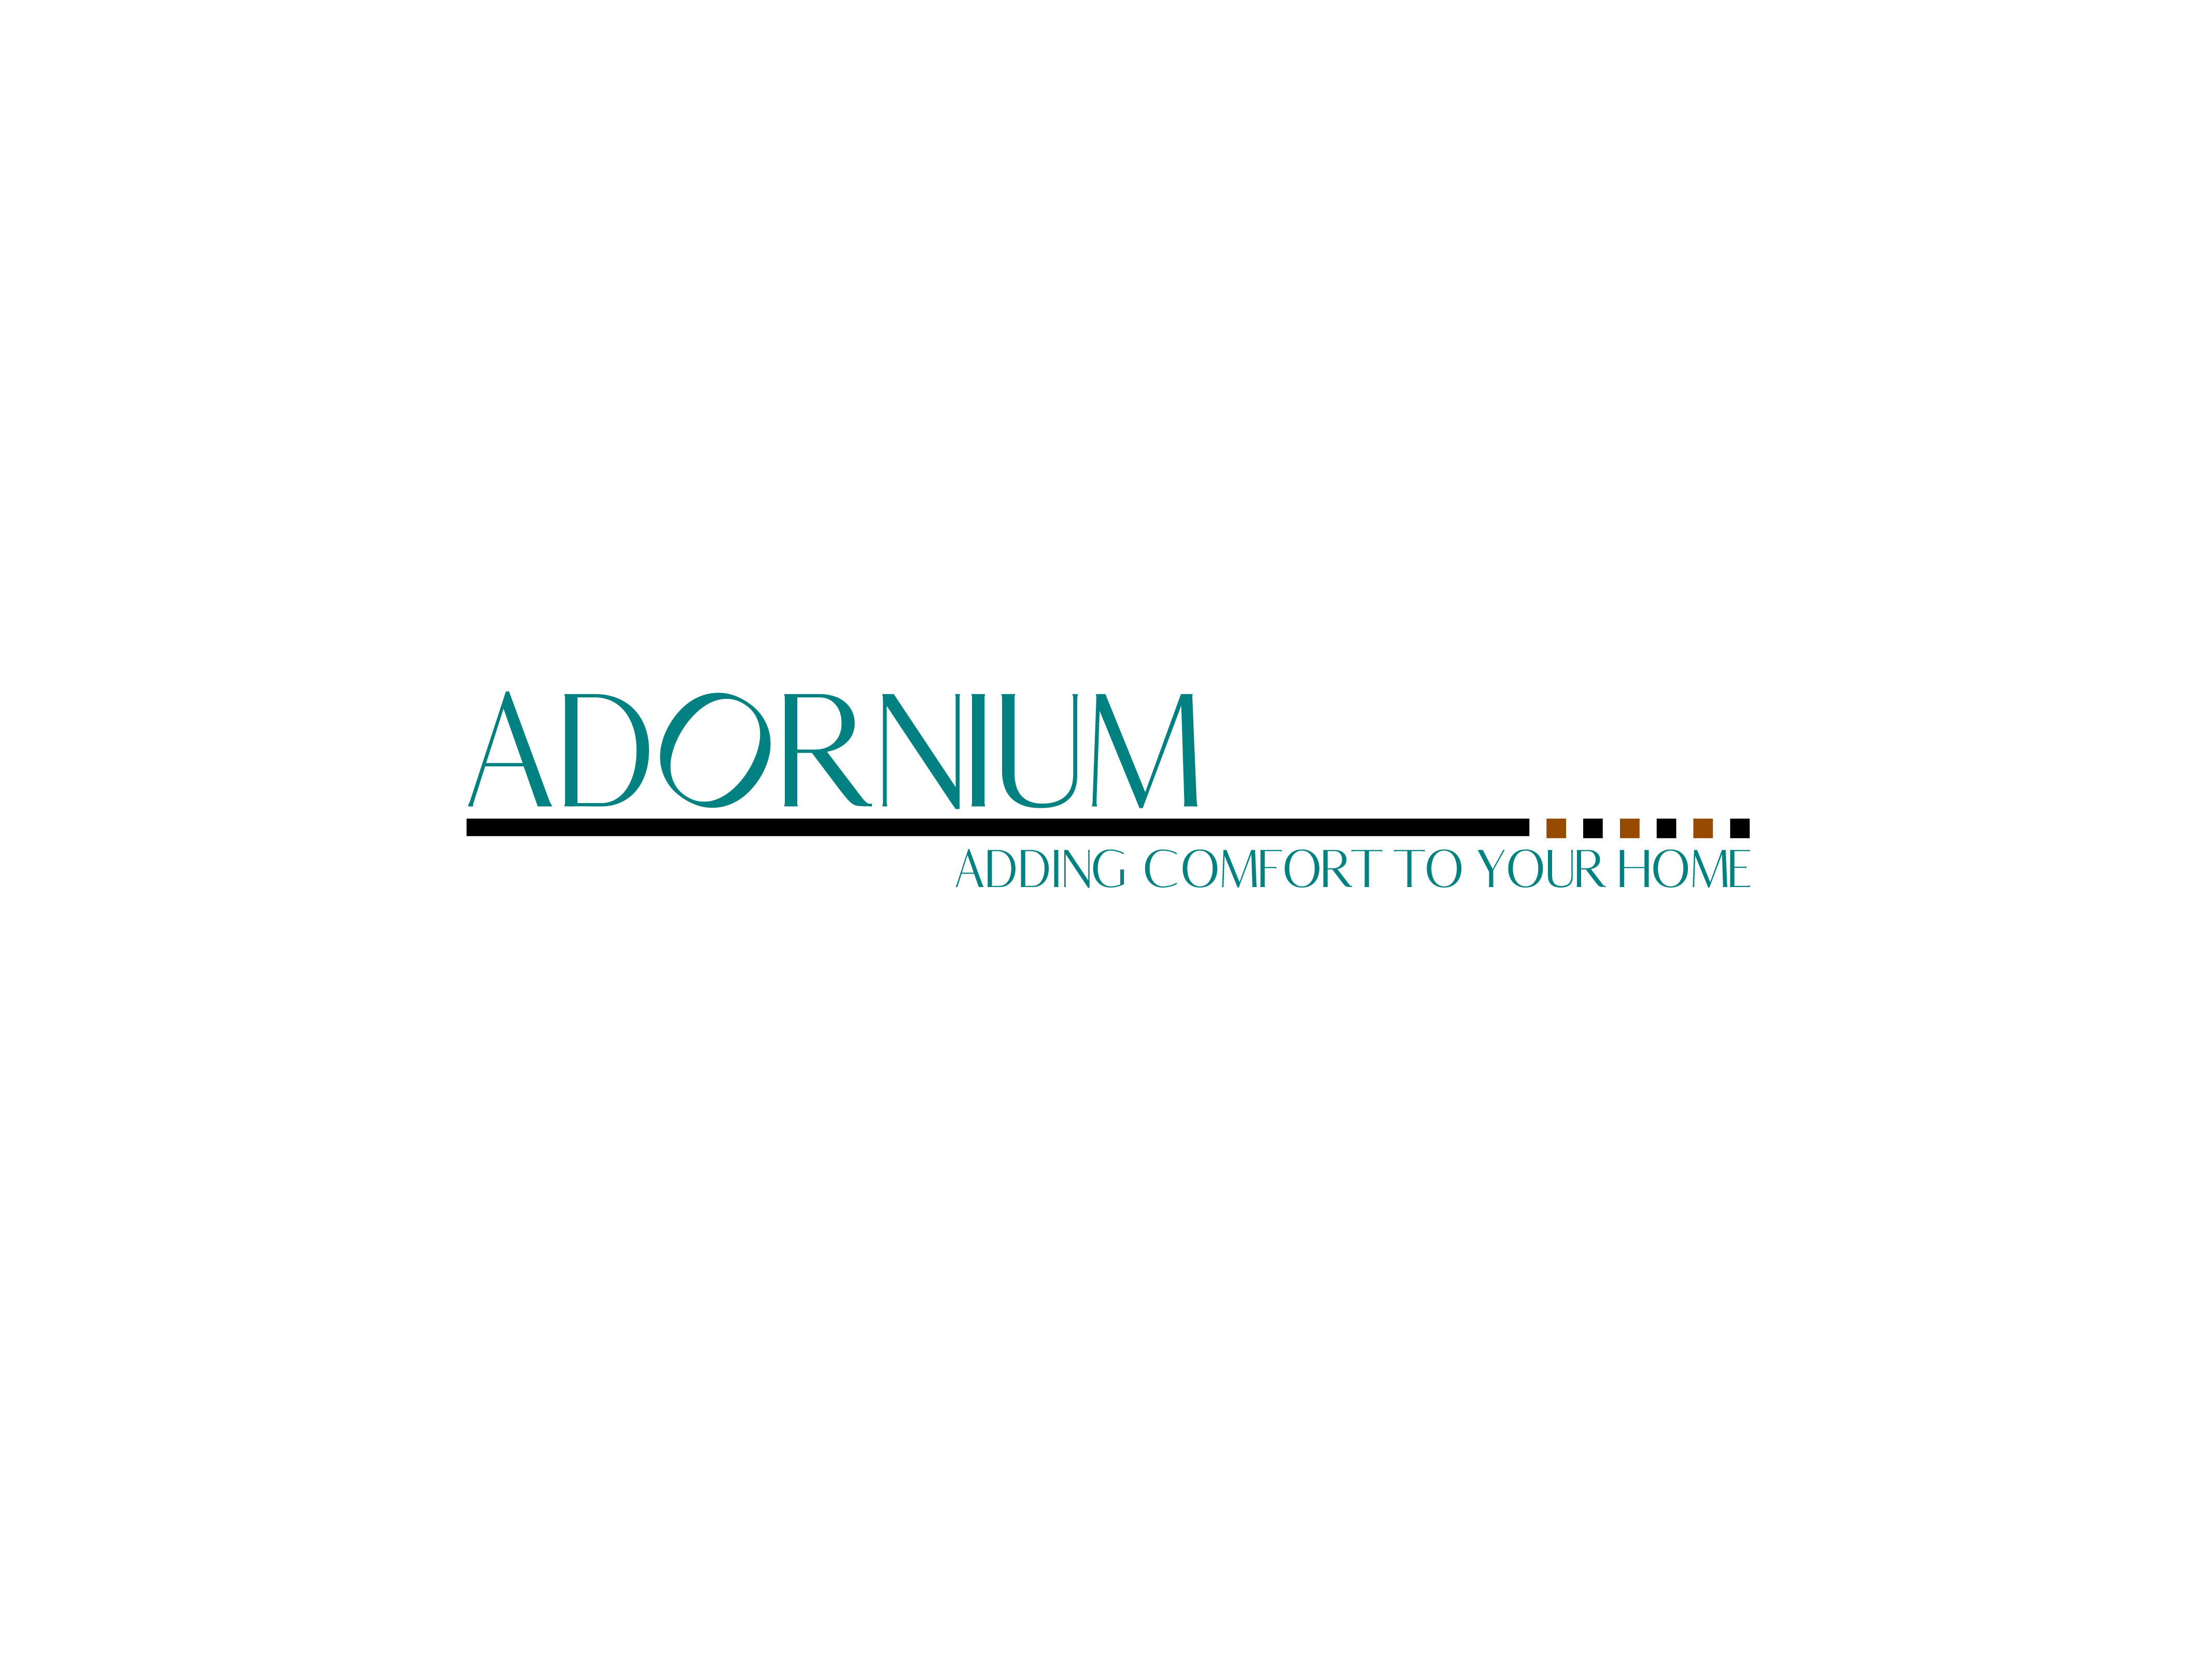 One of the many logo variations done for ADORNIUM